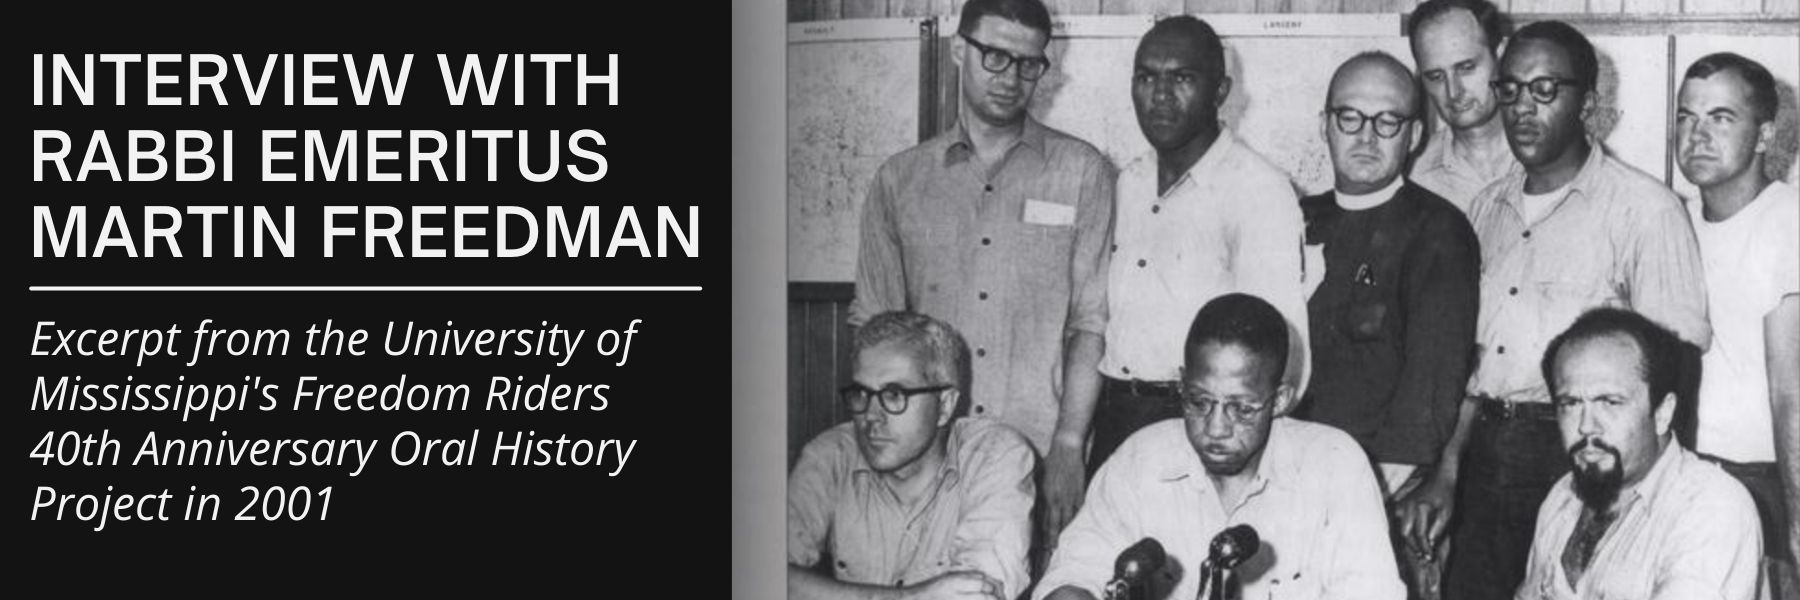 """<a href=""""https://youtu.be/5BFtjv2zMhk""""                                     target=""""_blank"""">                                                                 <span class=""""slider_title"""">                                     The Freedom Rides: In His Words                                </span>                                                                 </a>                                                                                                                                                                                       <span class=""""slider_description"""">Hear excerpts from the full-length interview done in 2001 with former Barnert Rabbi, Martin Freedman, about his experience participating in the Civil Rights Freedom Rides.</span>"""